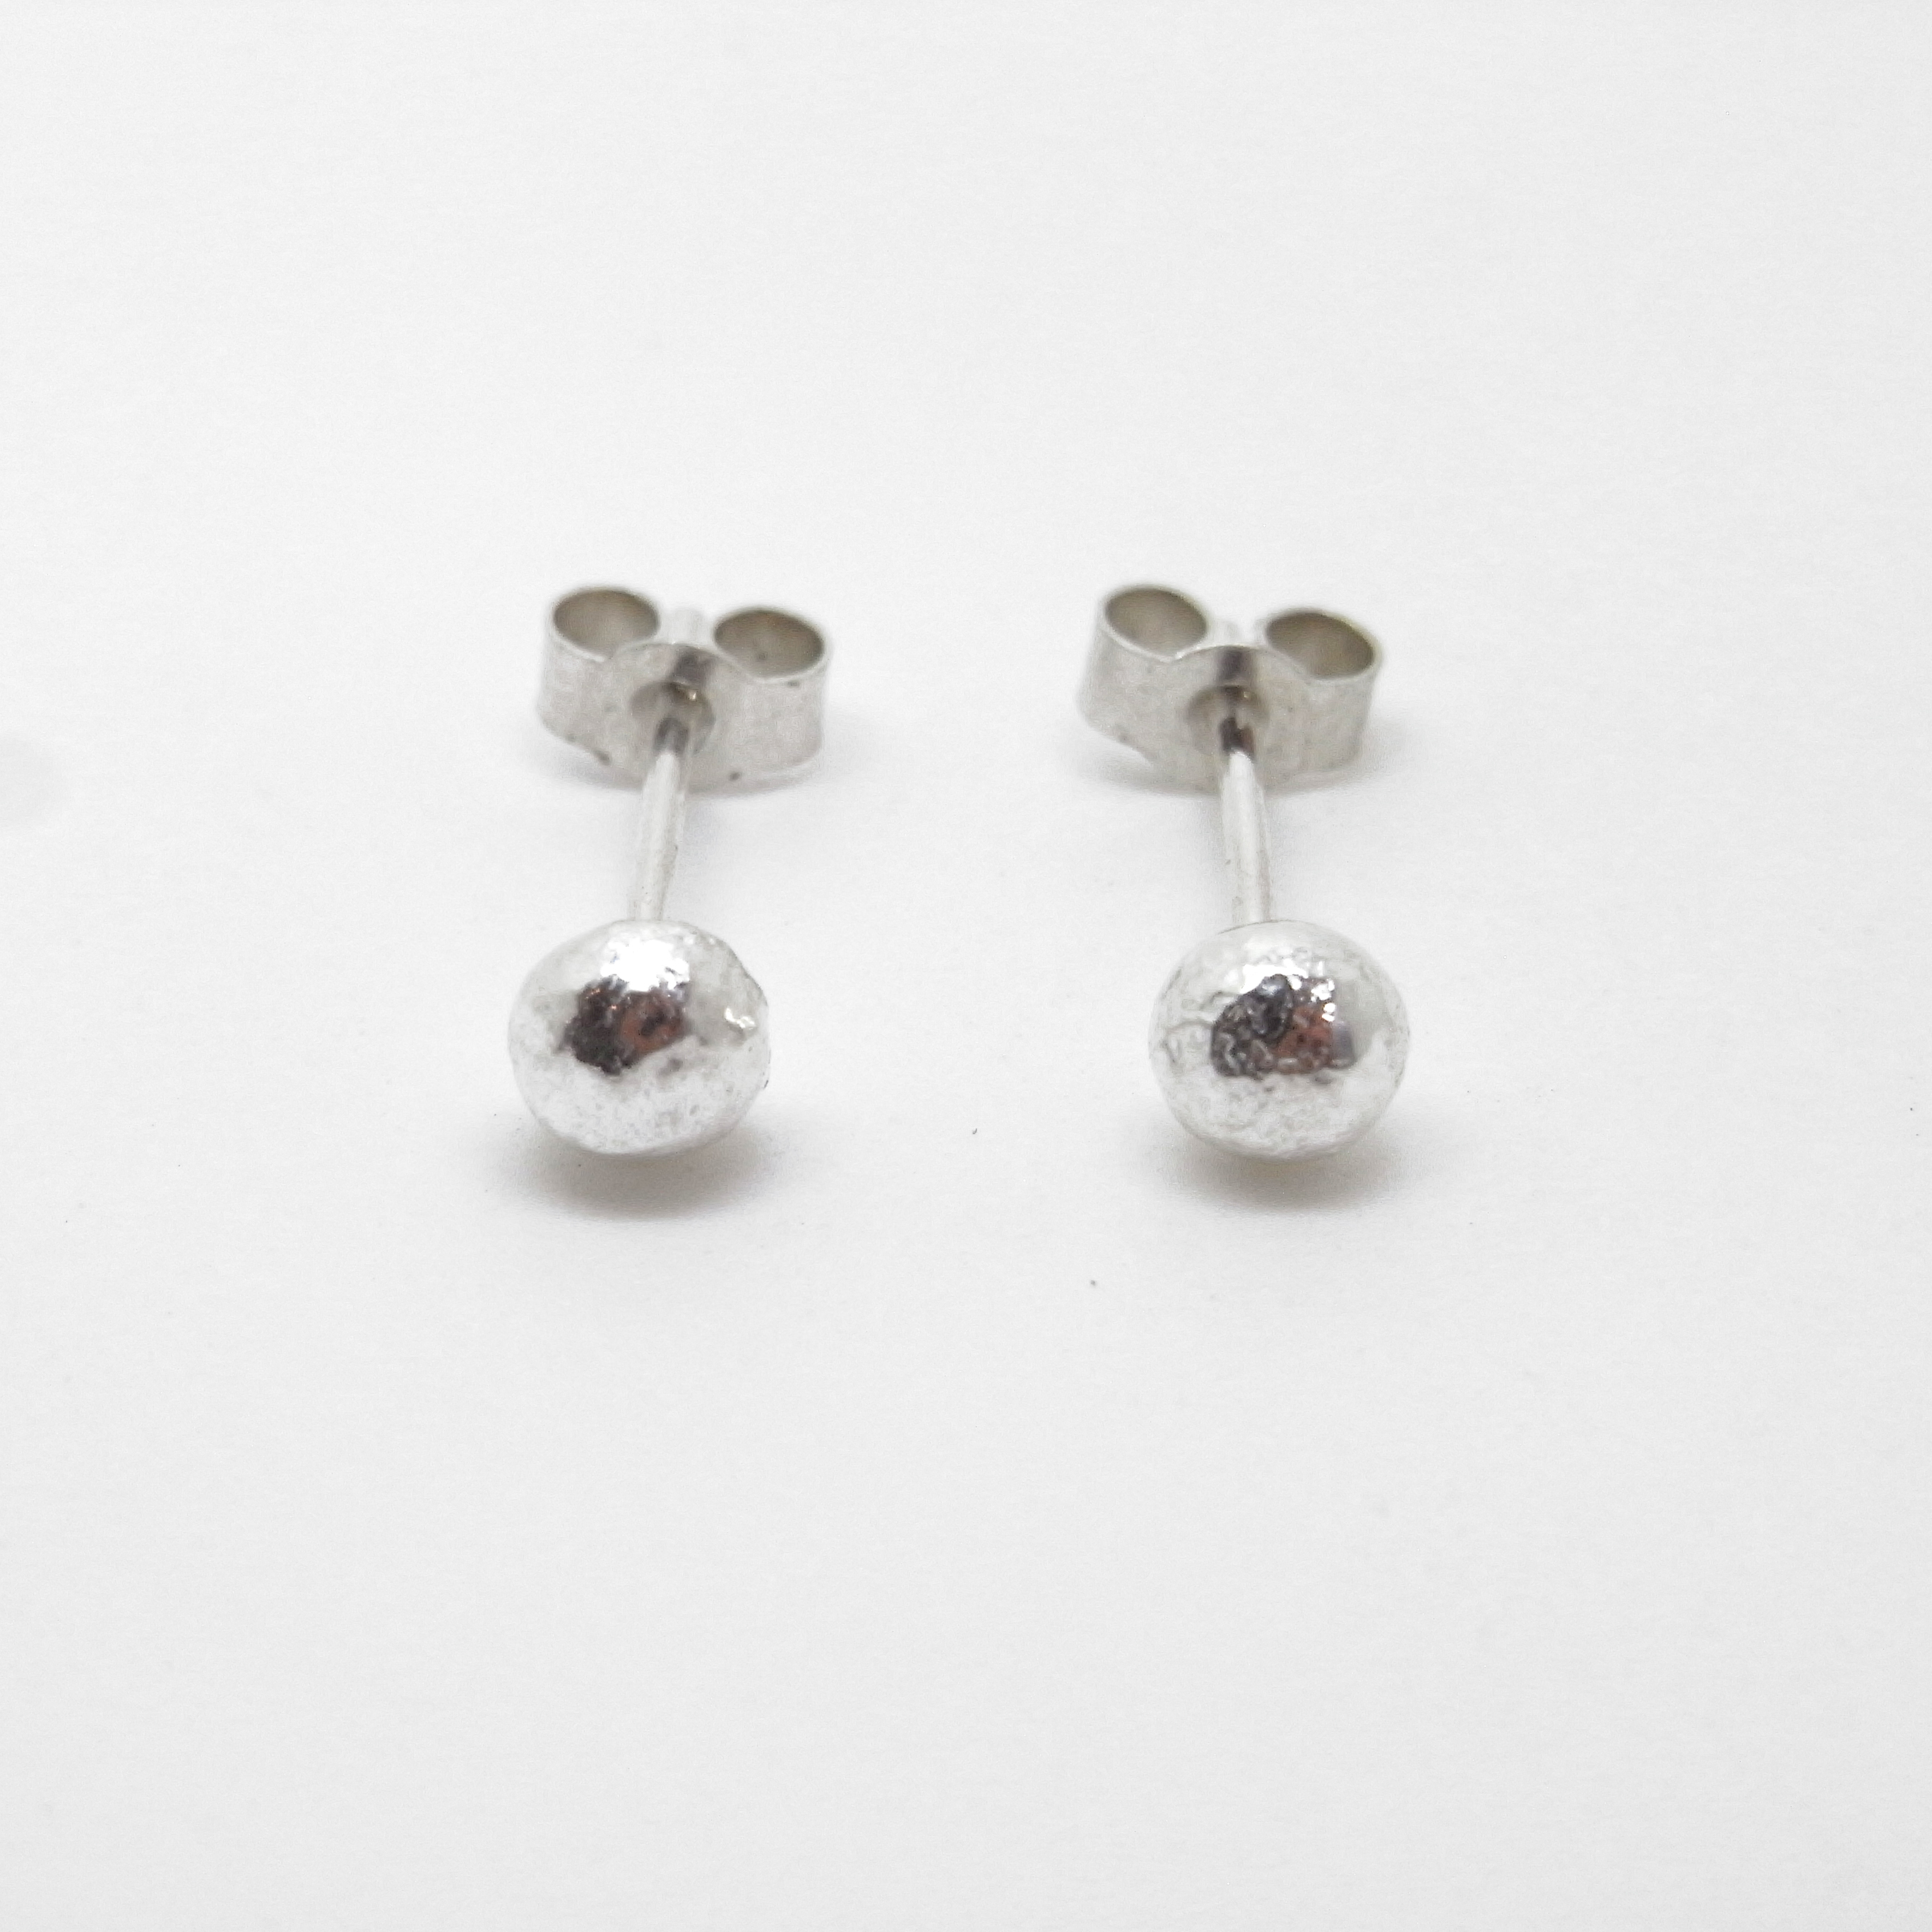 OFFER - Small Silver Studs